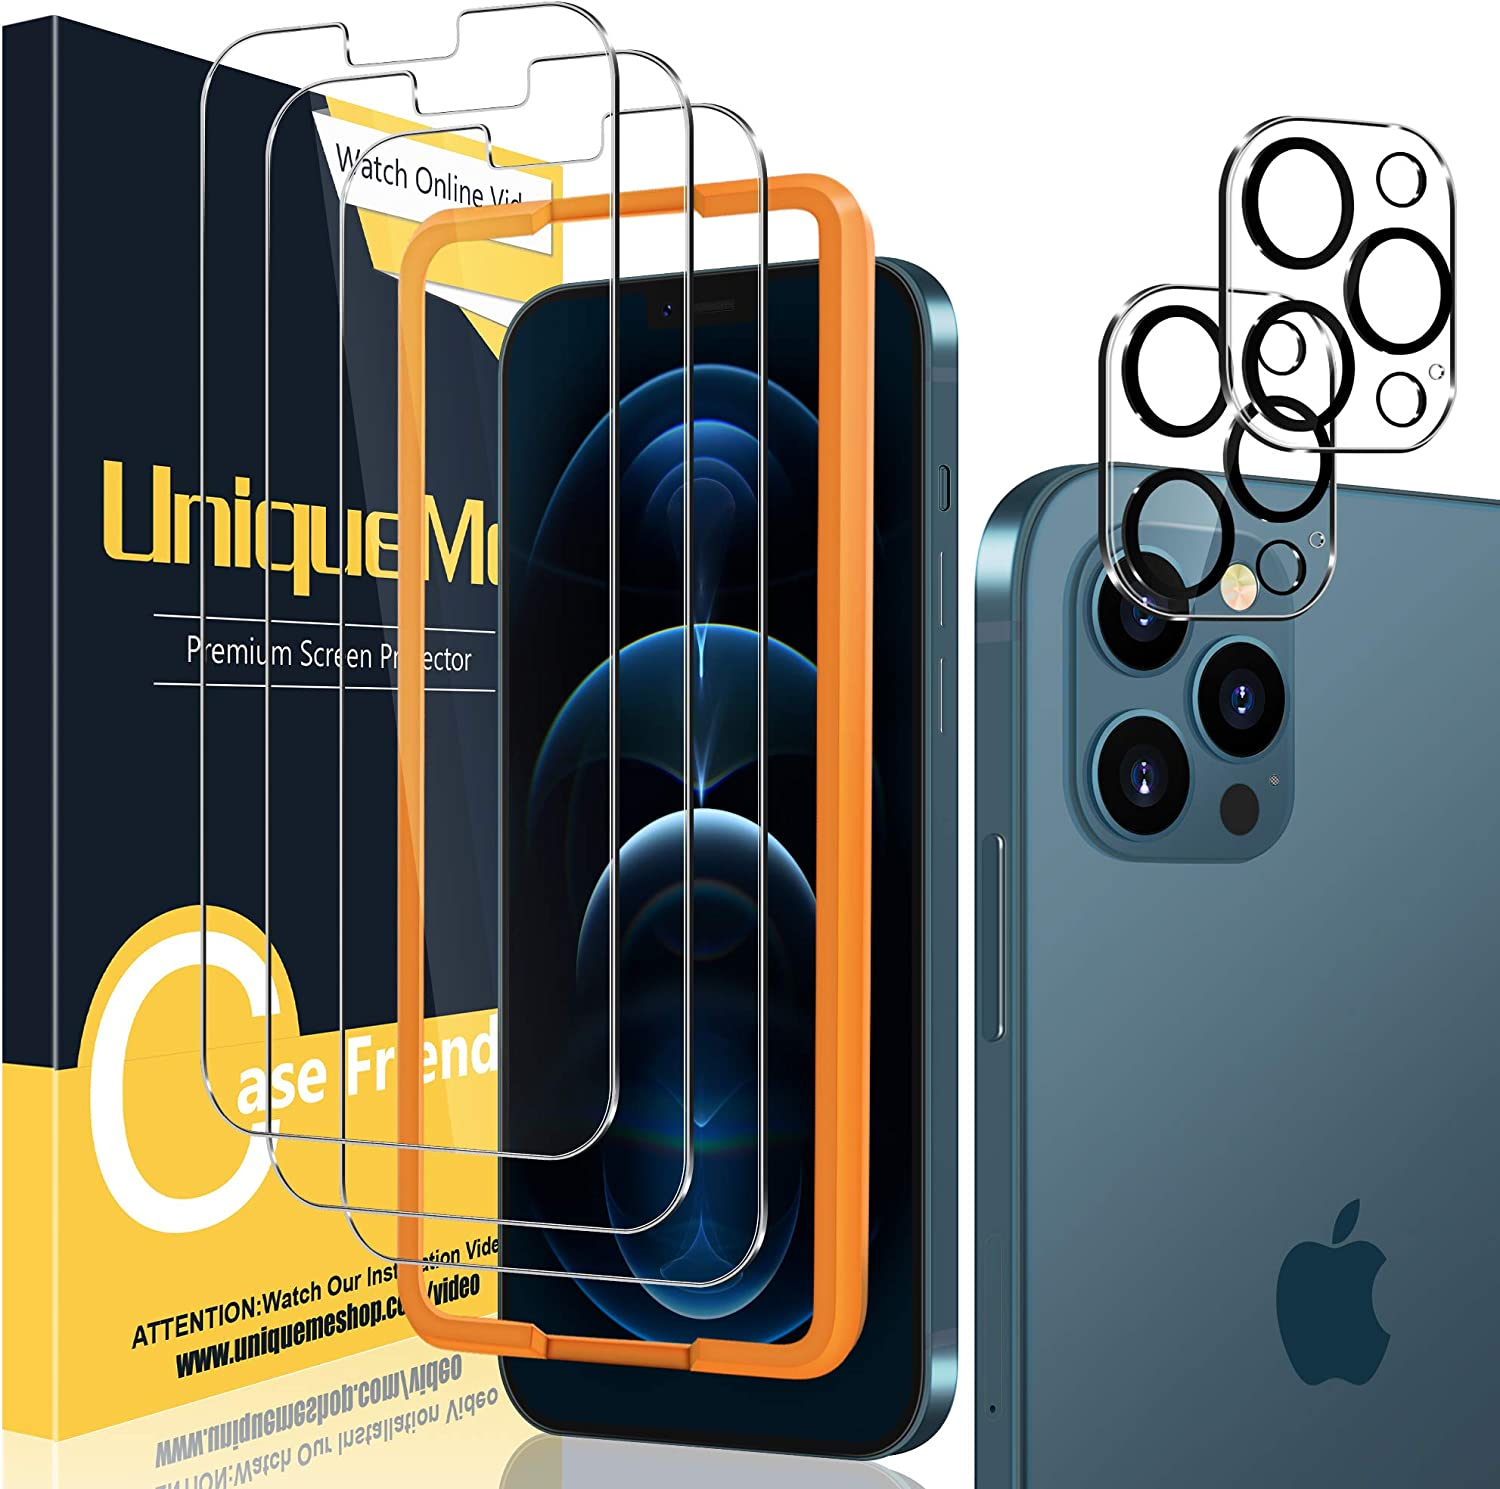 [2+3 Pack] UniqueMe Camera Lens Protector and Screen Protector Compatible with iPhone 12 Pro 6.1 inch Termperd Glass [Easy Installation Frame] HD [Anti-Scratch] [Bubble Free]